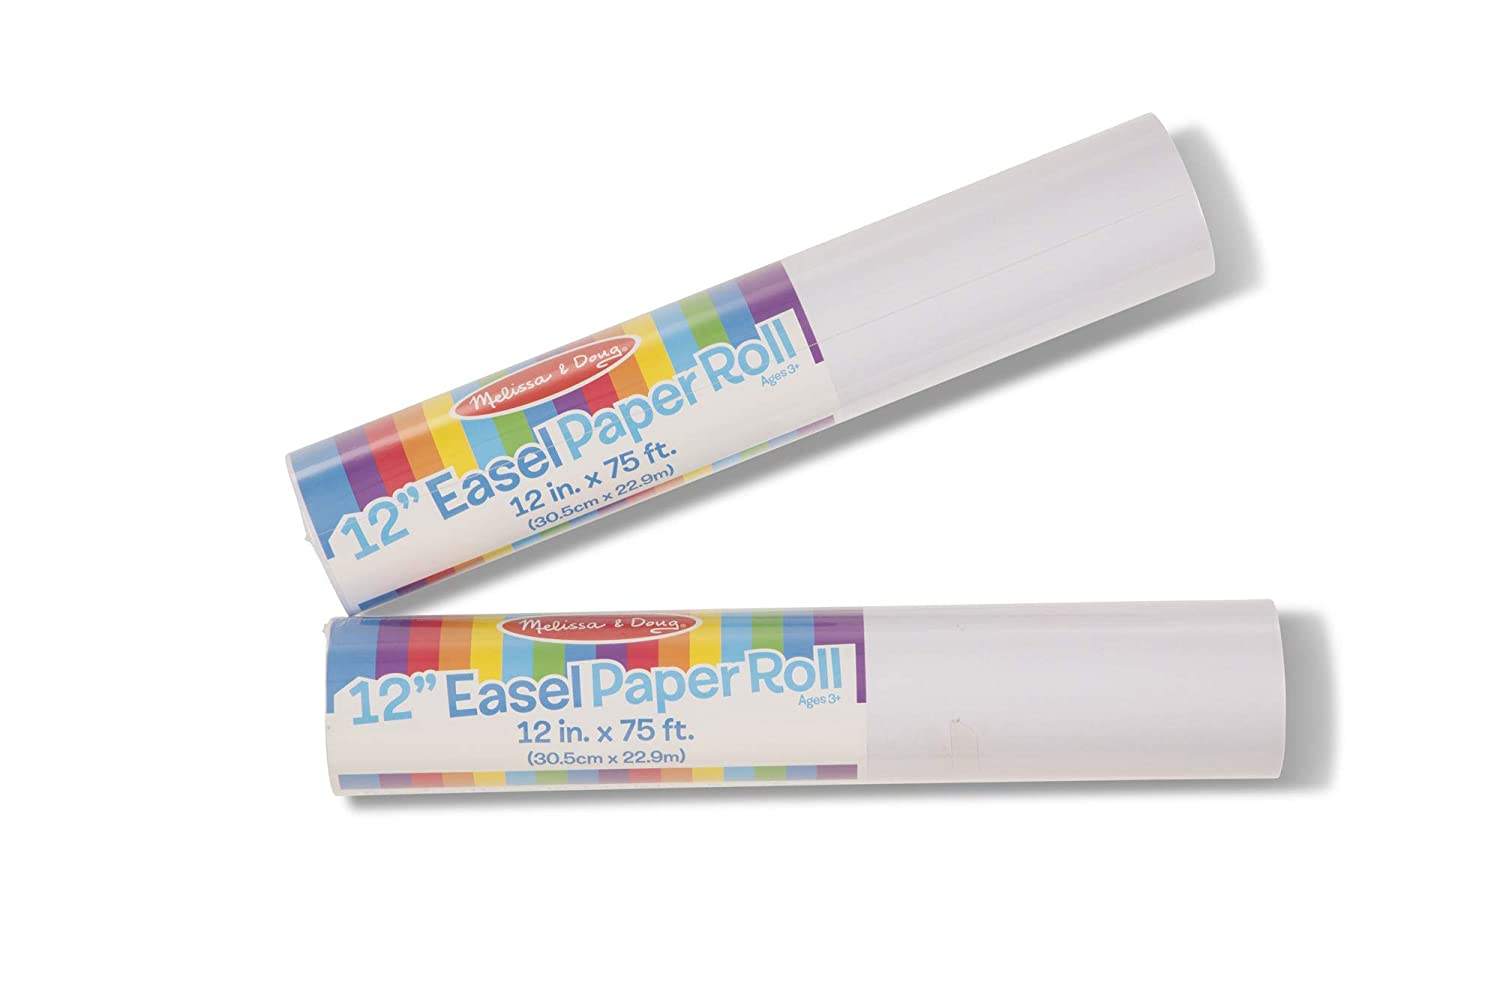 Melissa /& Doug Tabletop Easel Paper Roll 12 inches x 75 feet